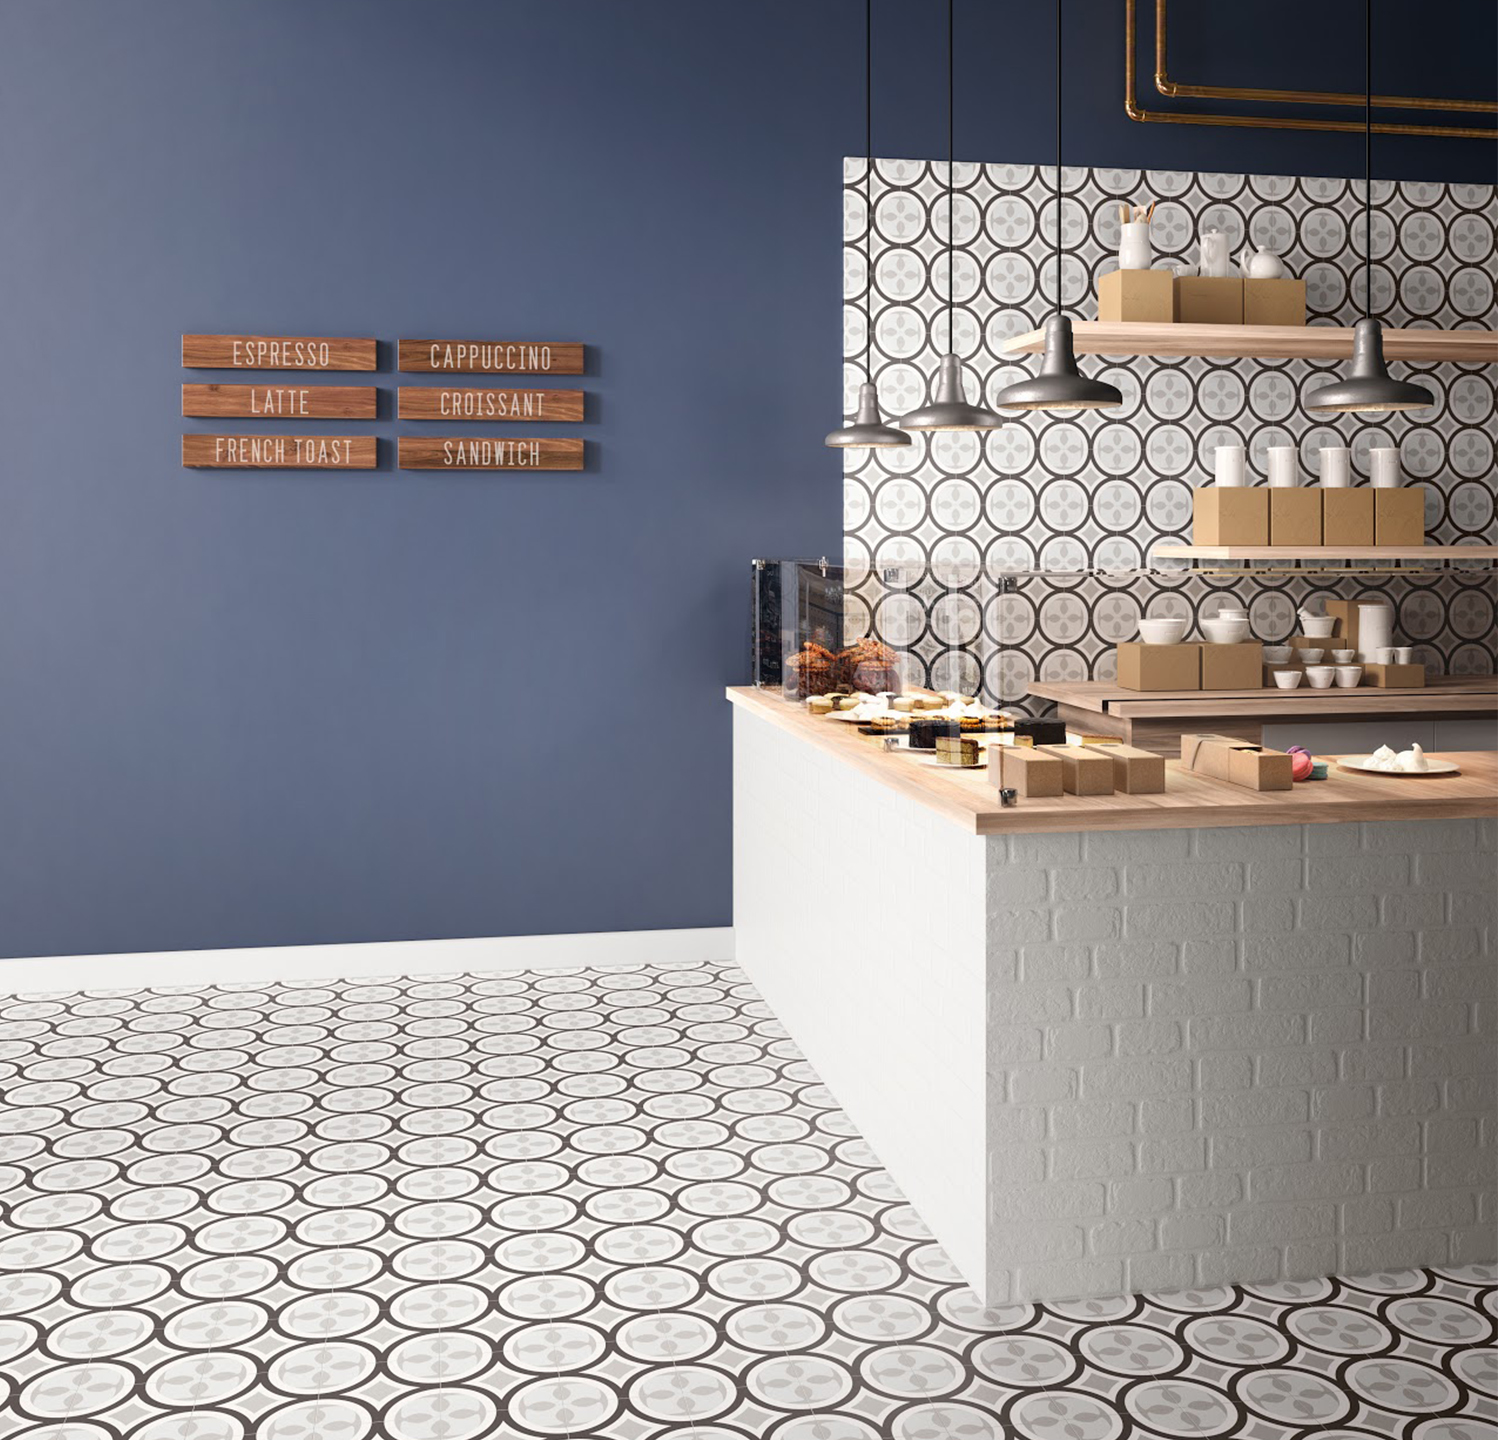 Available in three colorways, Aster is suitable for wall and floor applications.